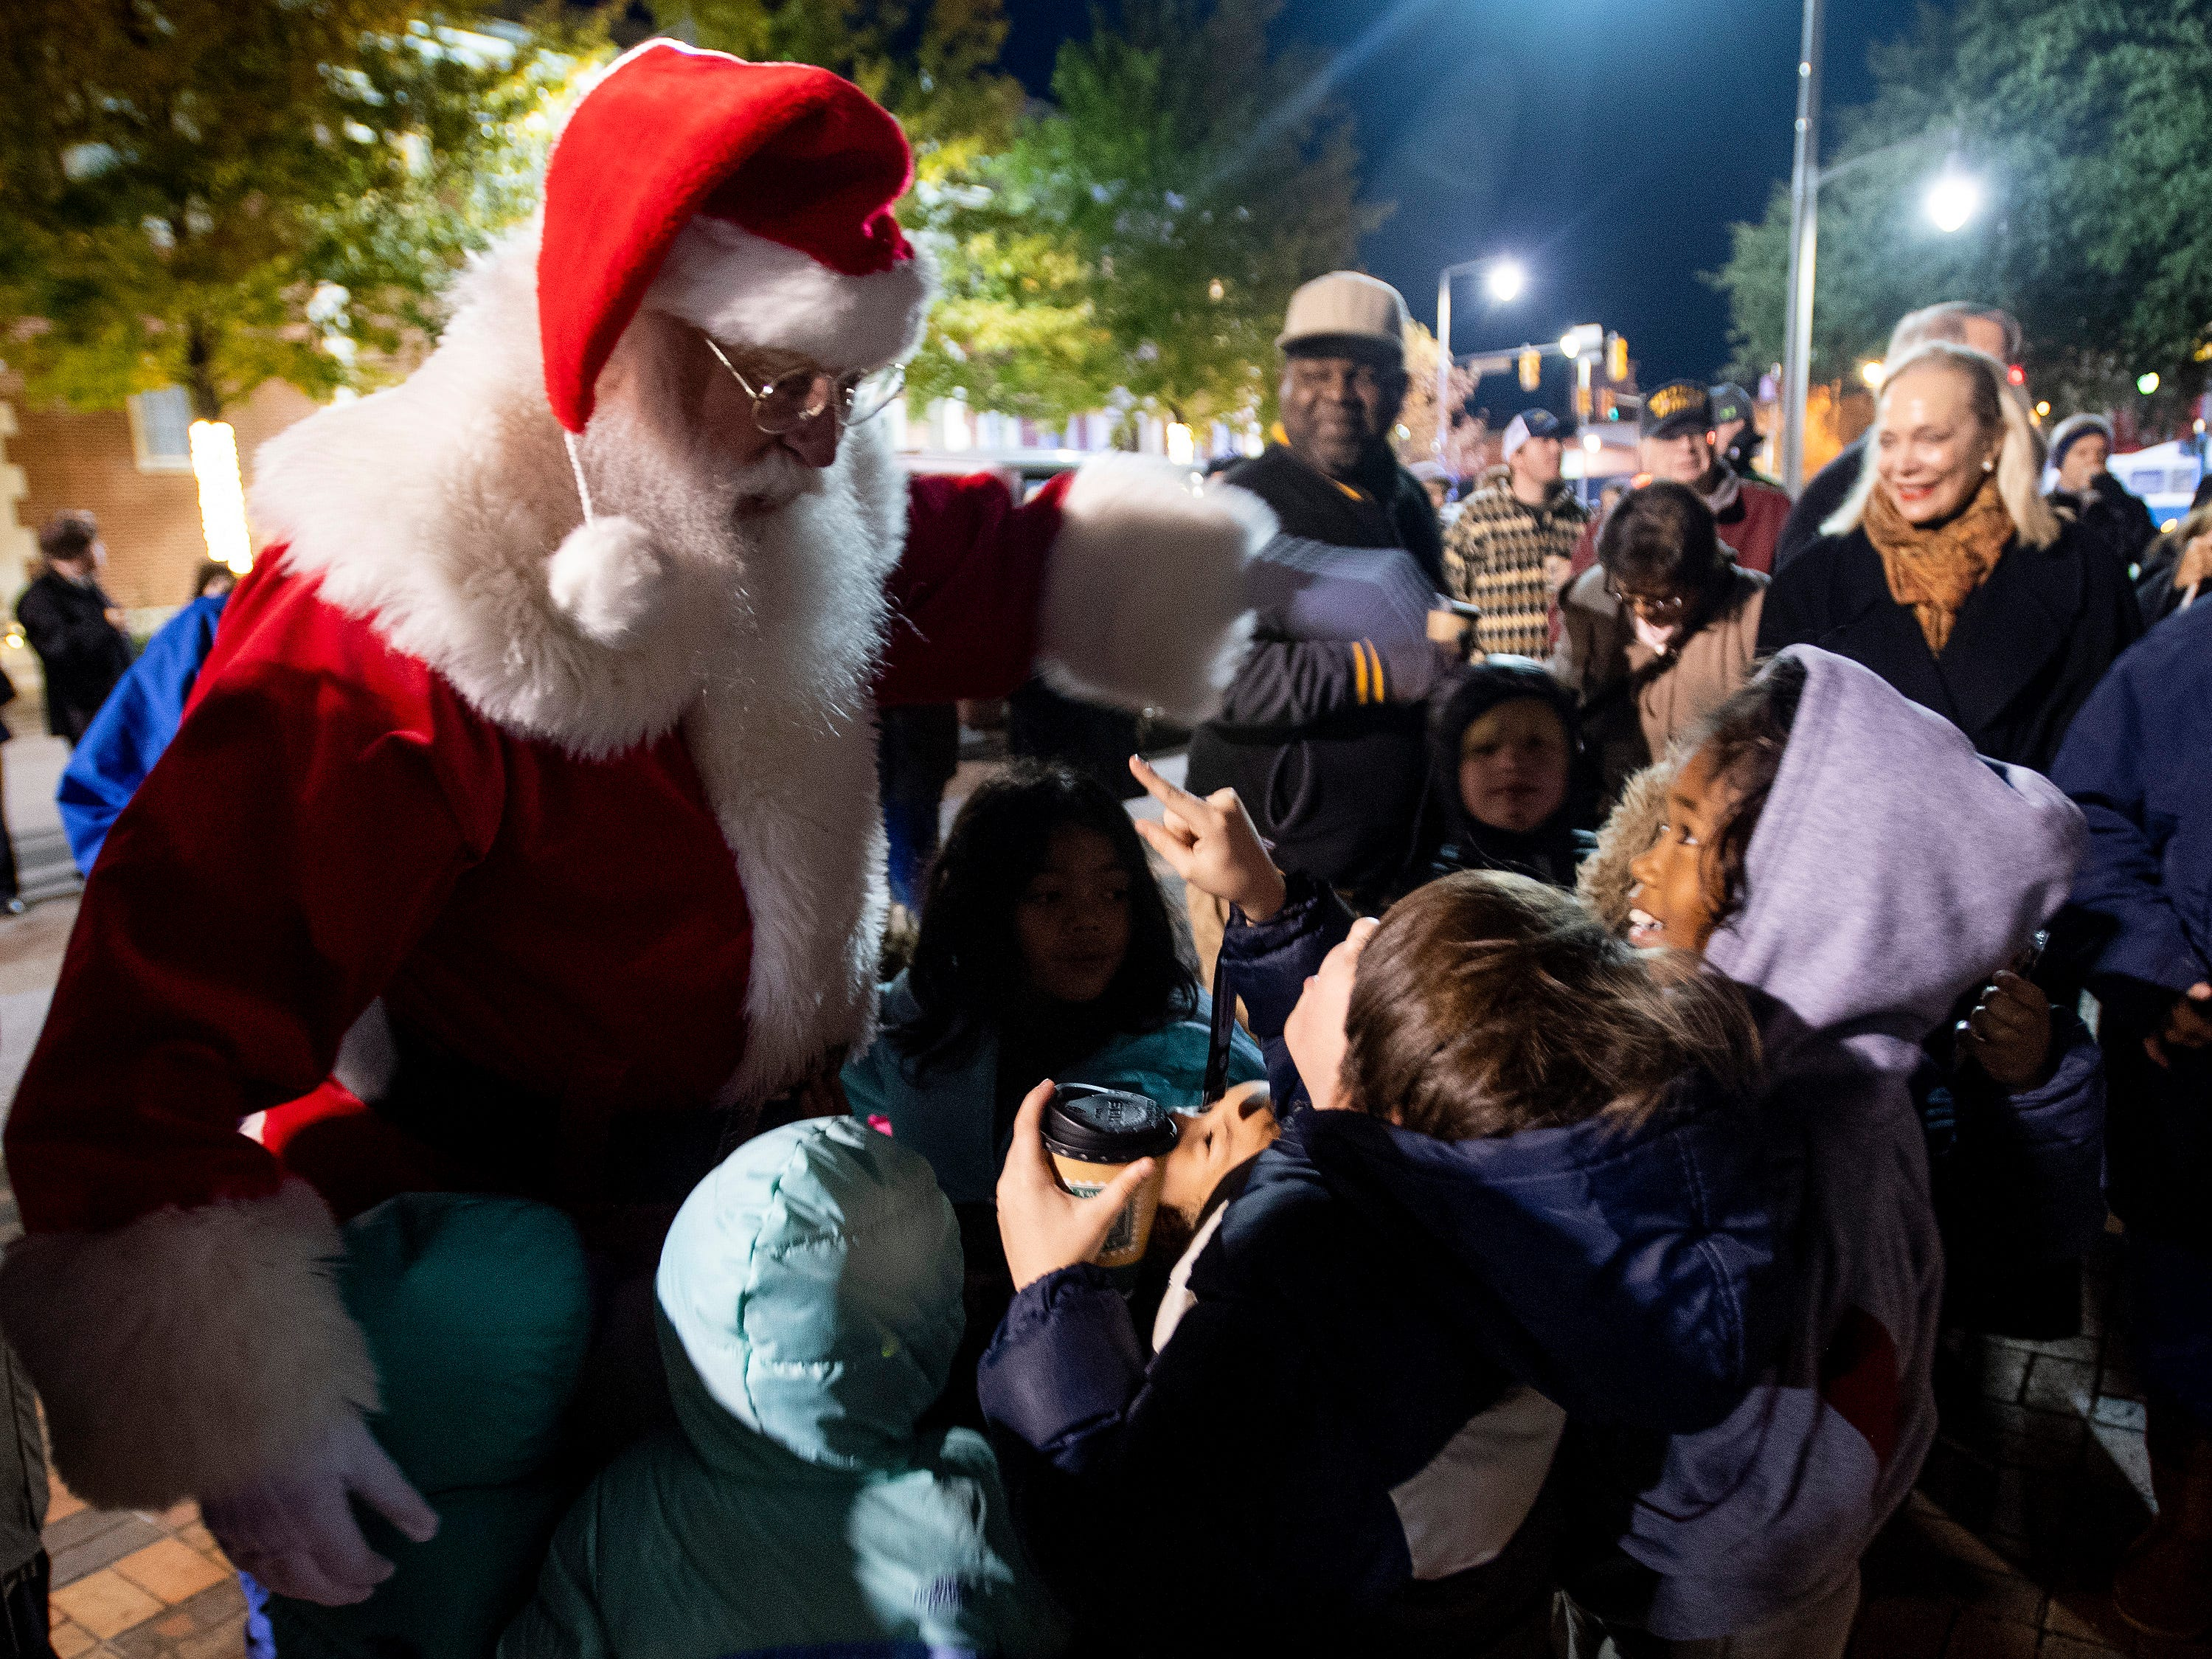 Santa Claus greets children attending the City of Montgomery Christmas Tree lighting in Montgomery, Ala., on Tuesday evening November 27, 2018.